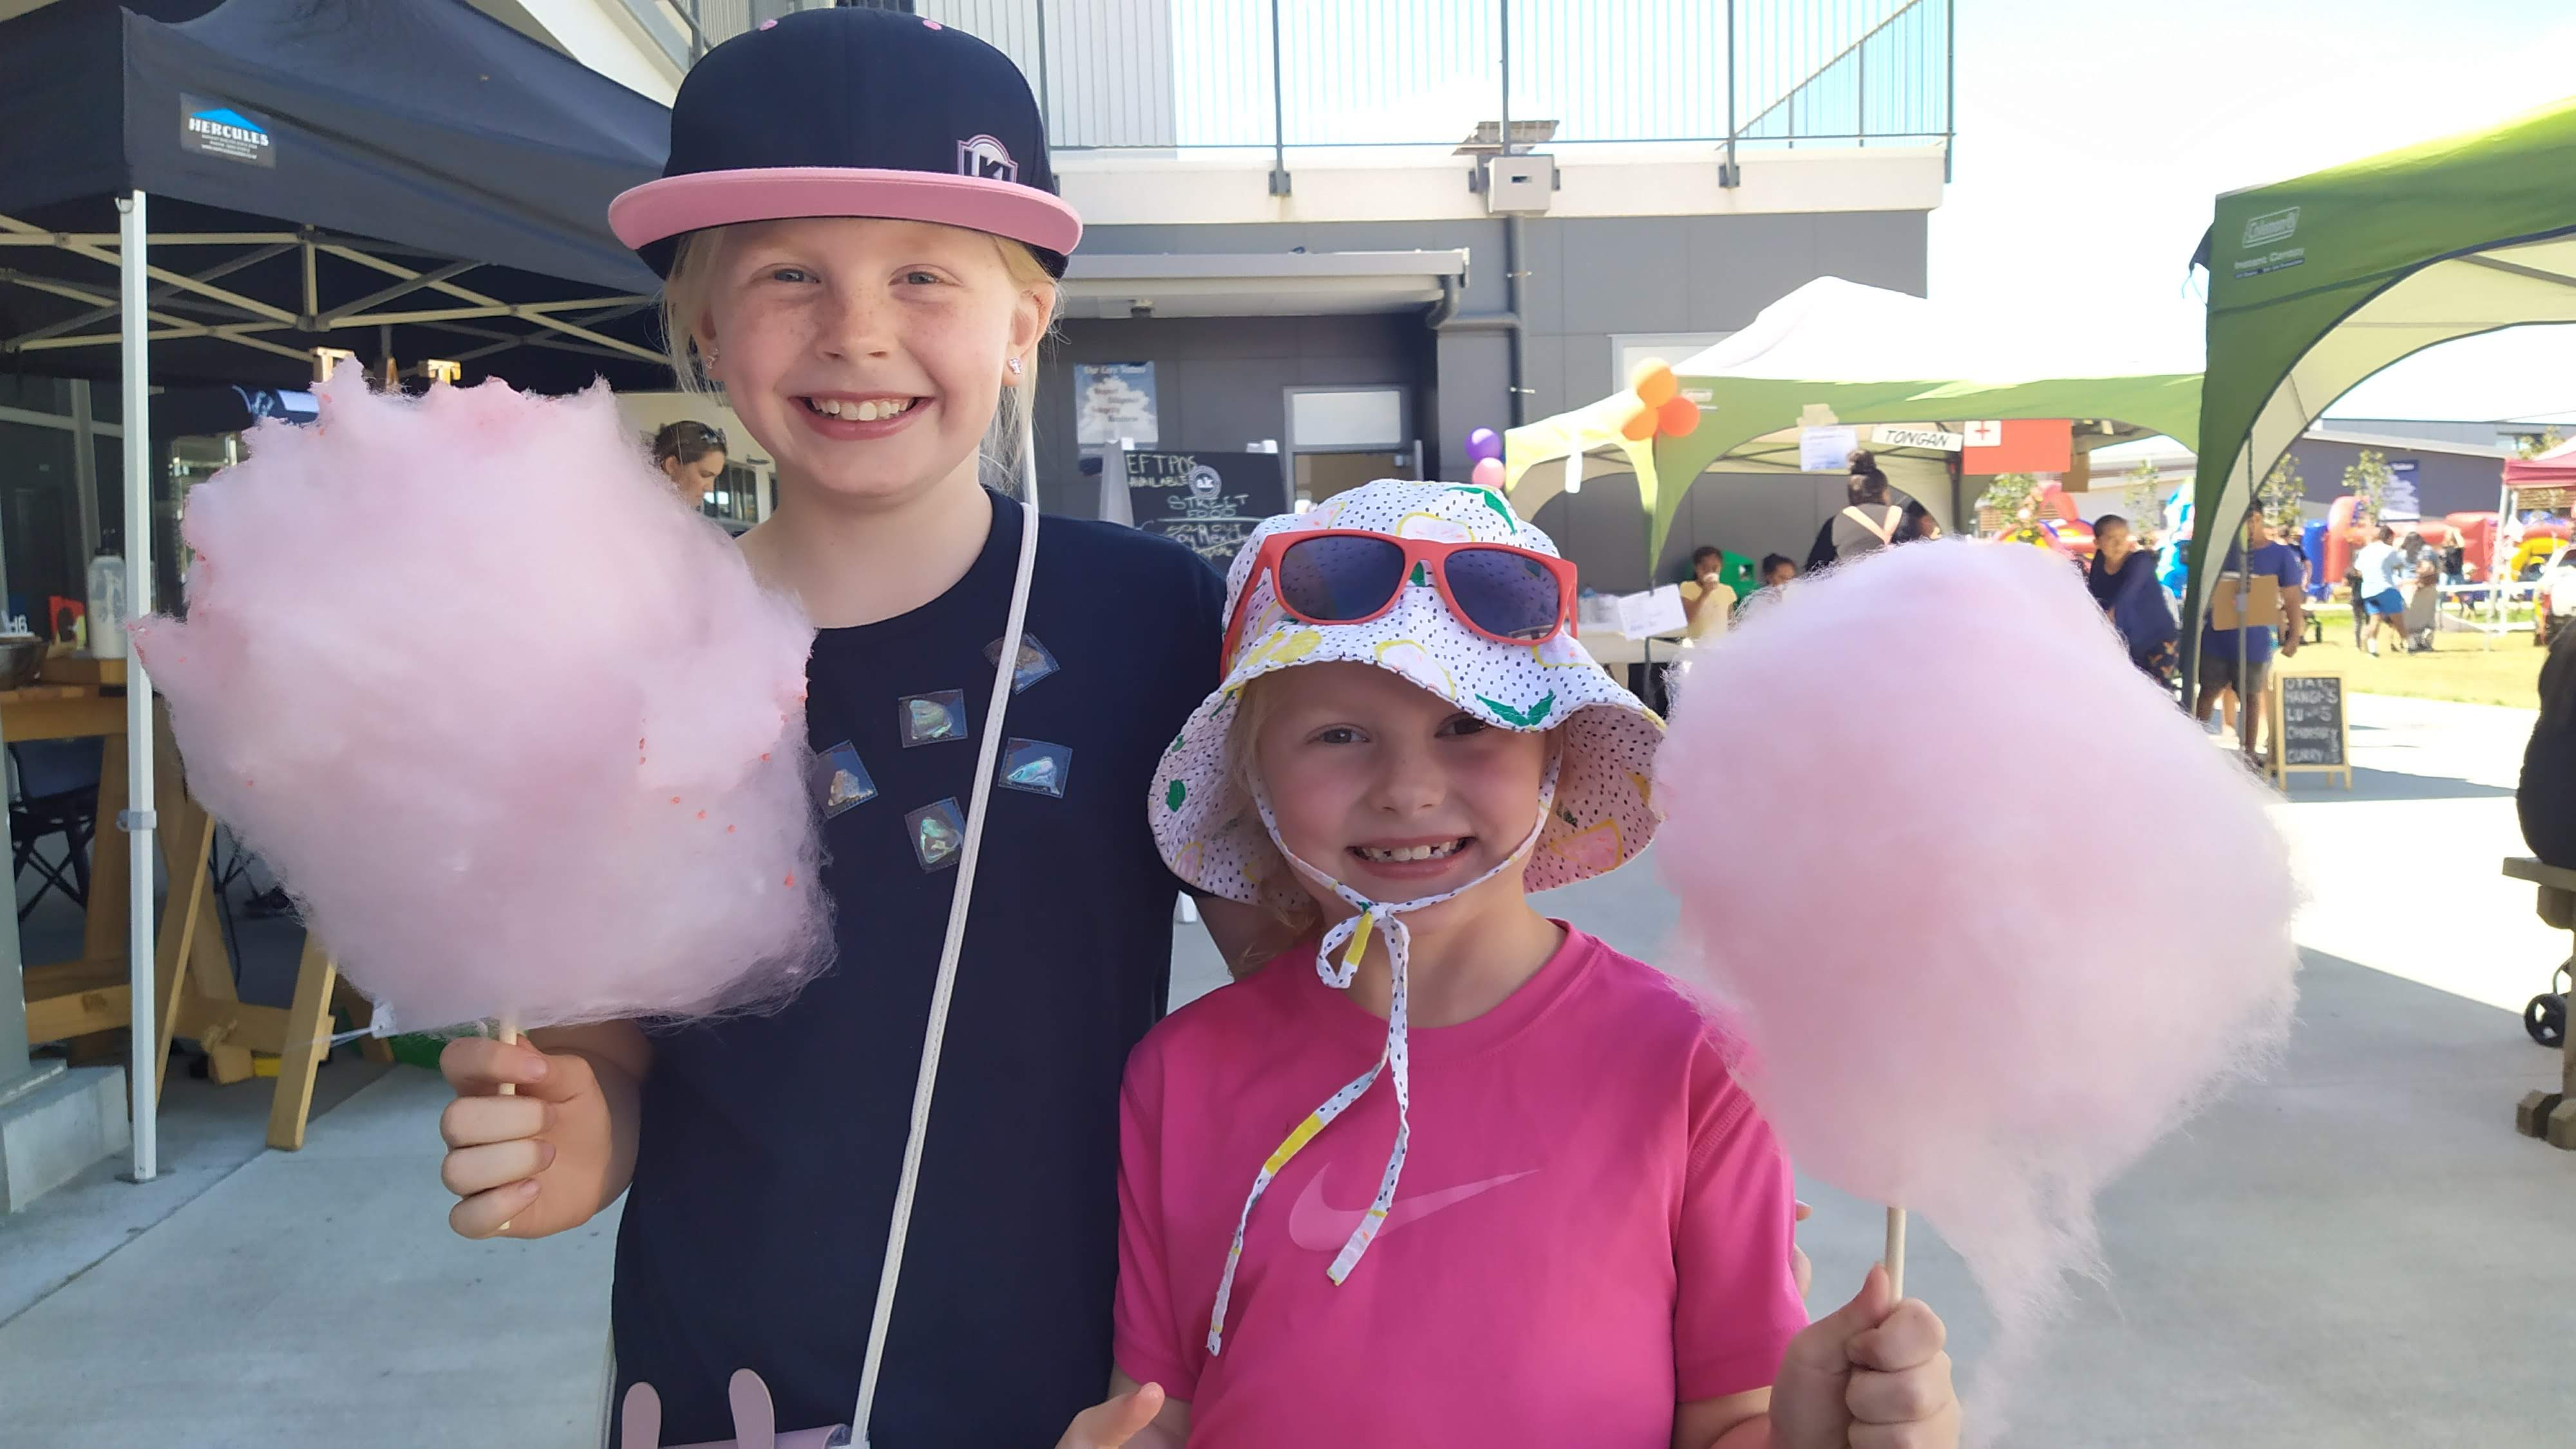 Big Candy-floss means big smiles.